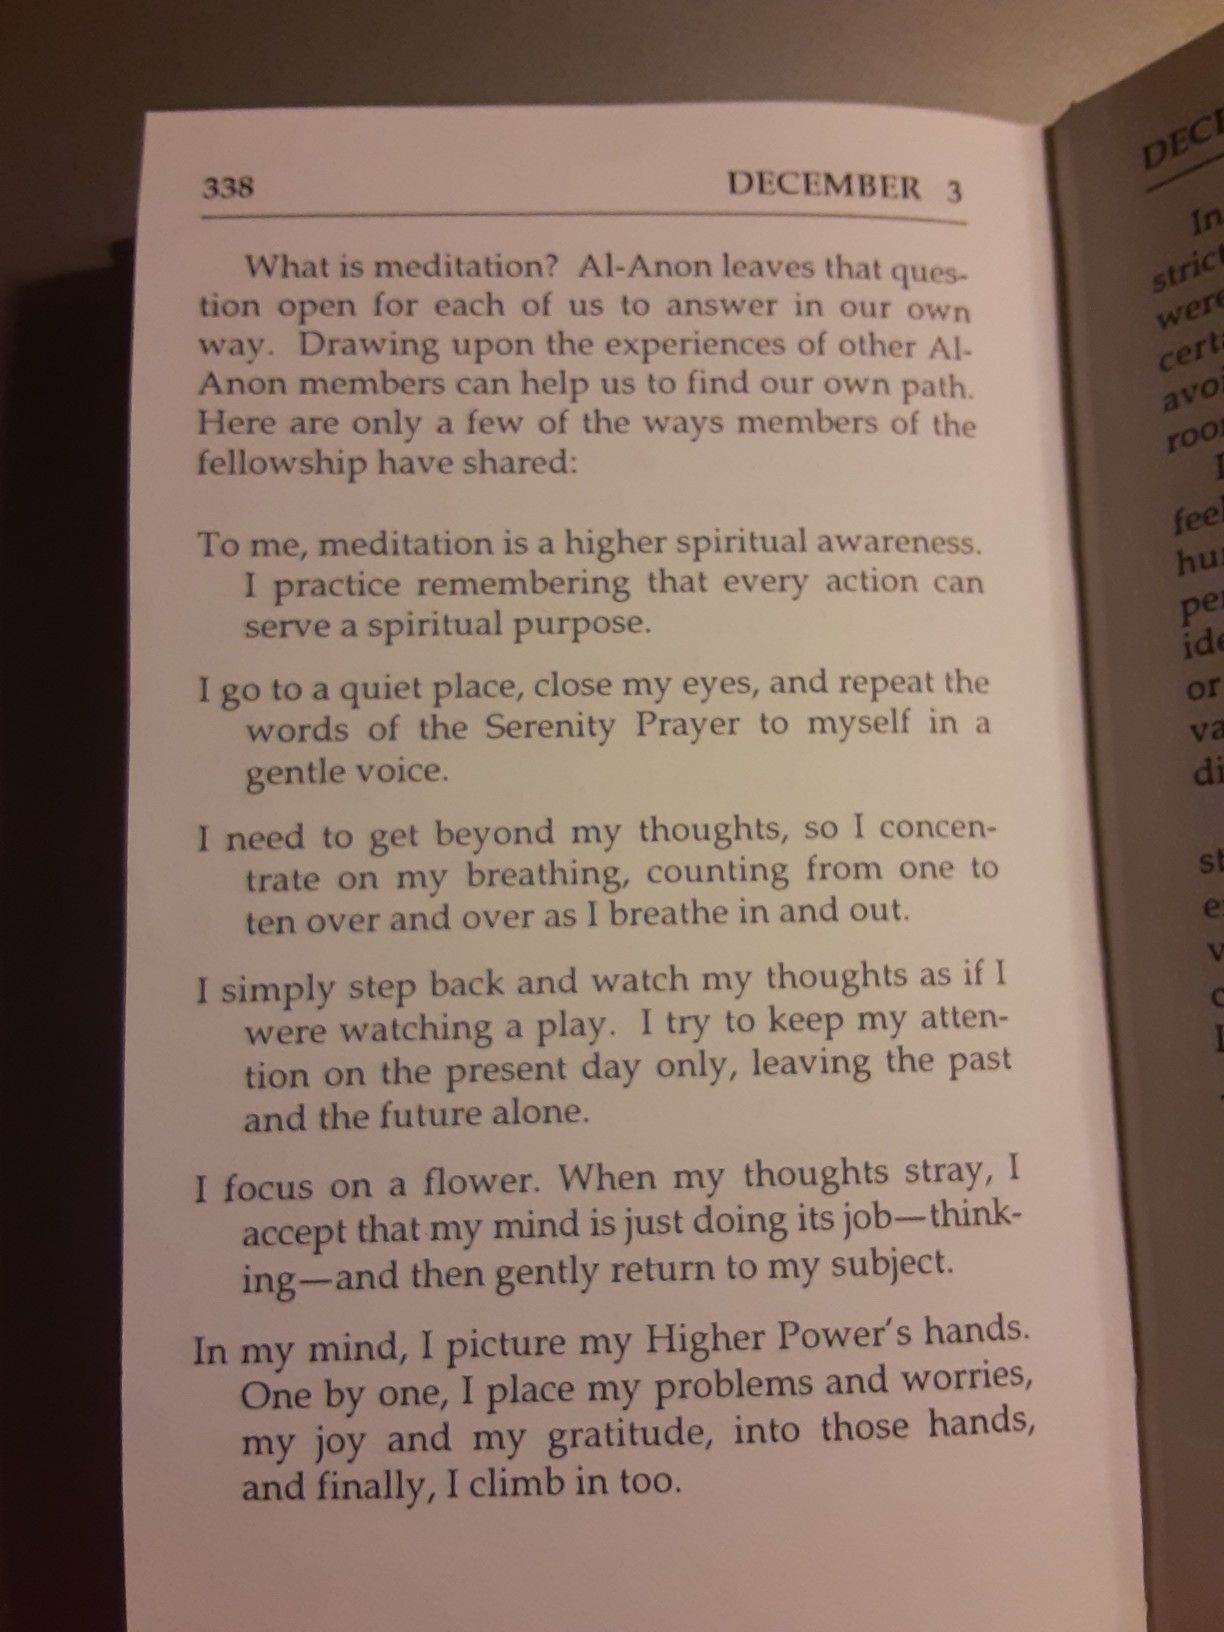 Pin by Laura Fracker on Al-Anon & Alcoholics Anonymous ...